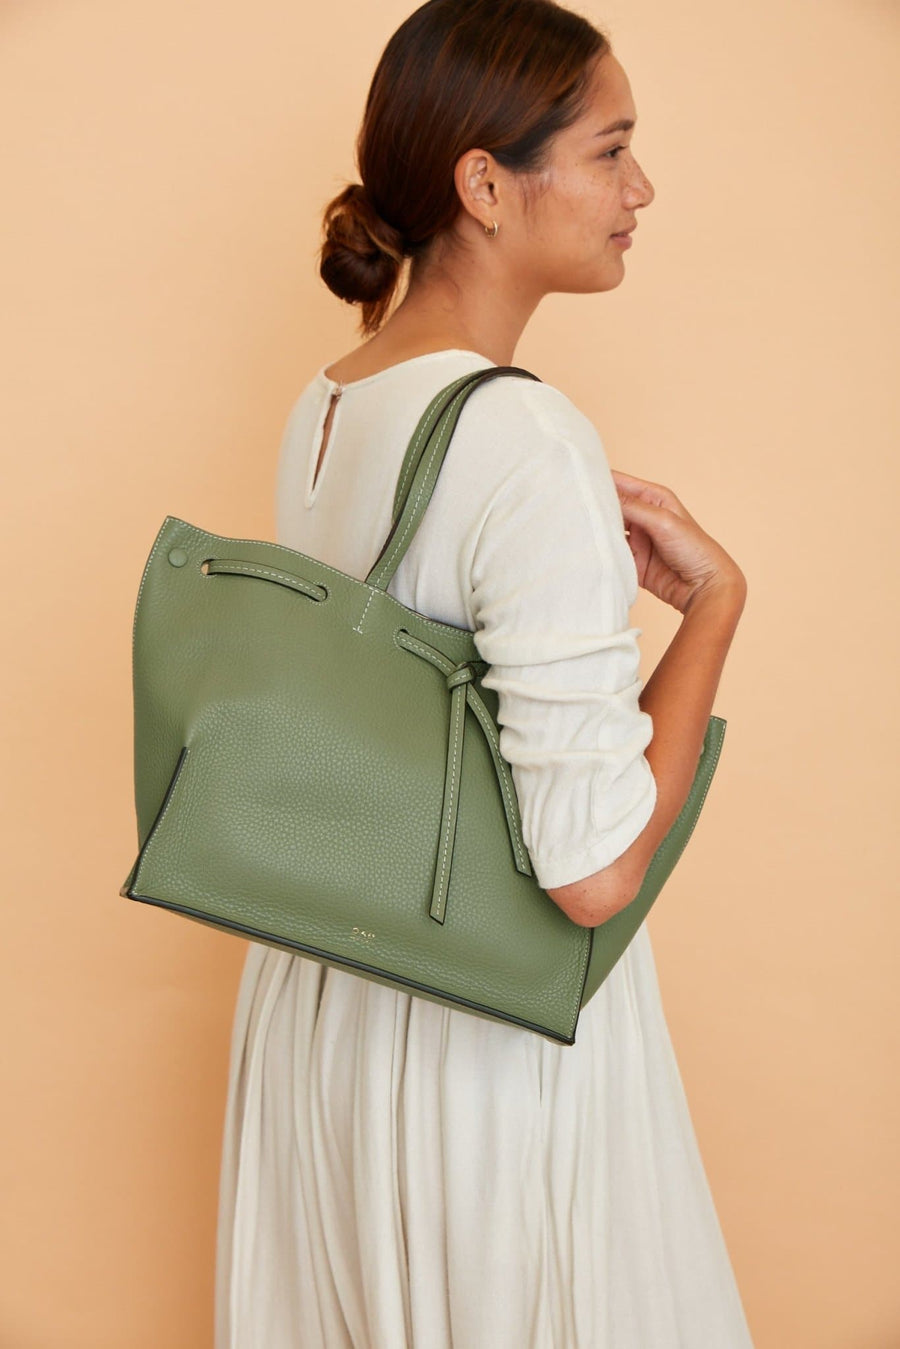 C Edie Bag - Olive - OAD NEW YORK